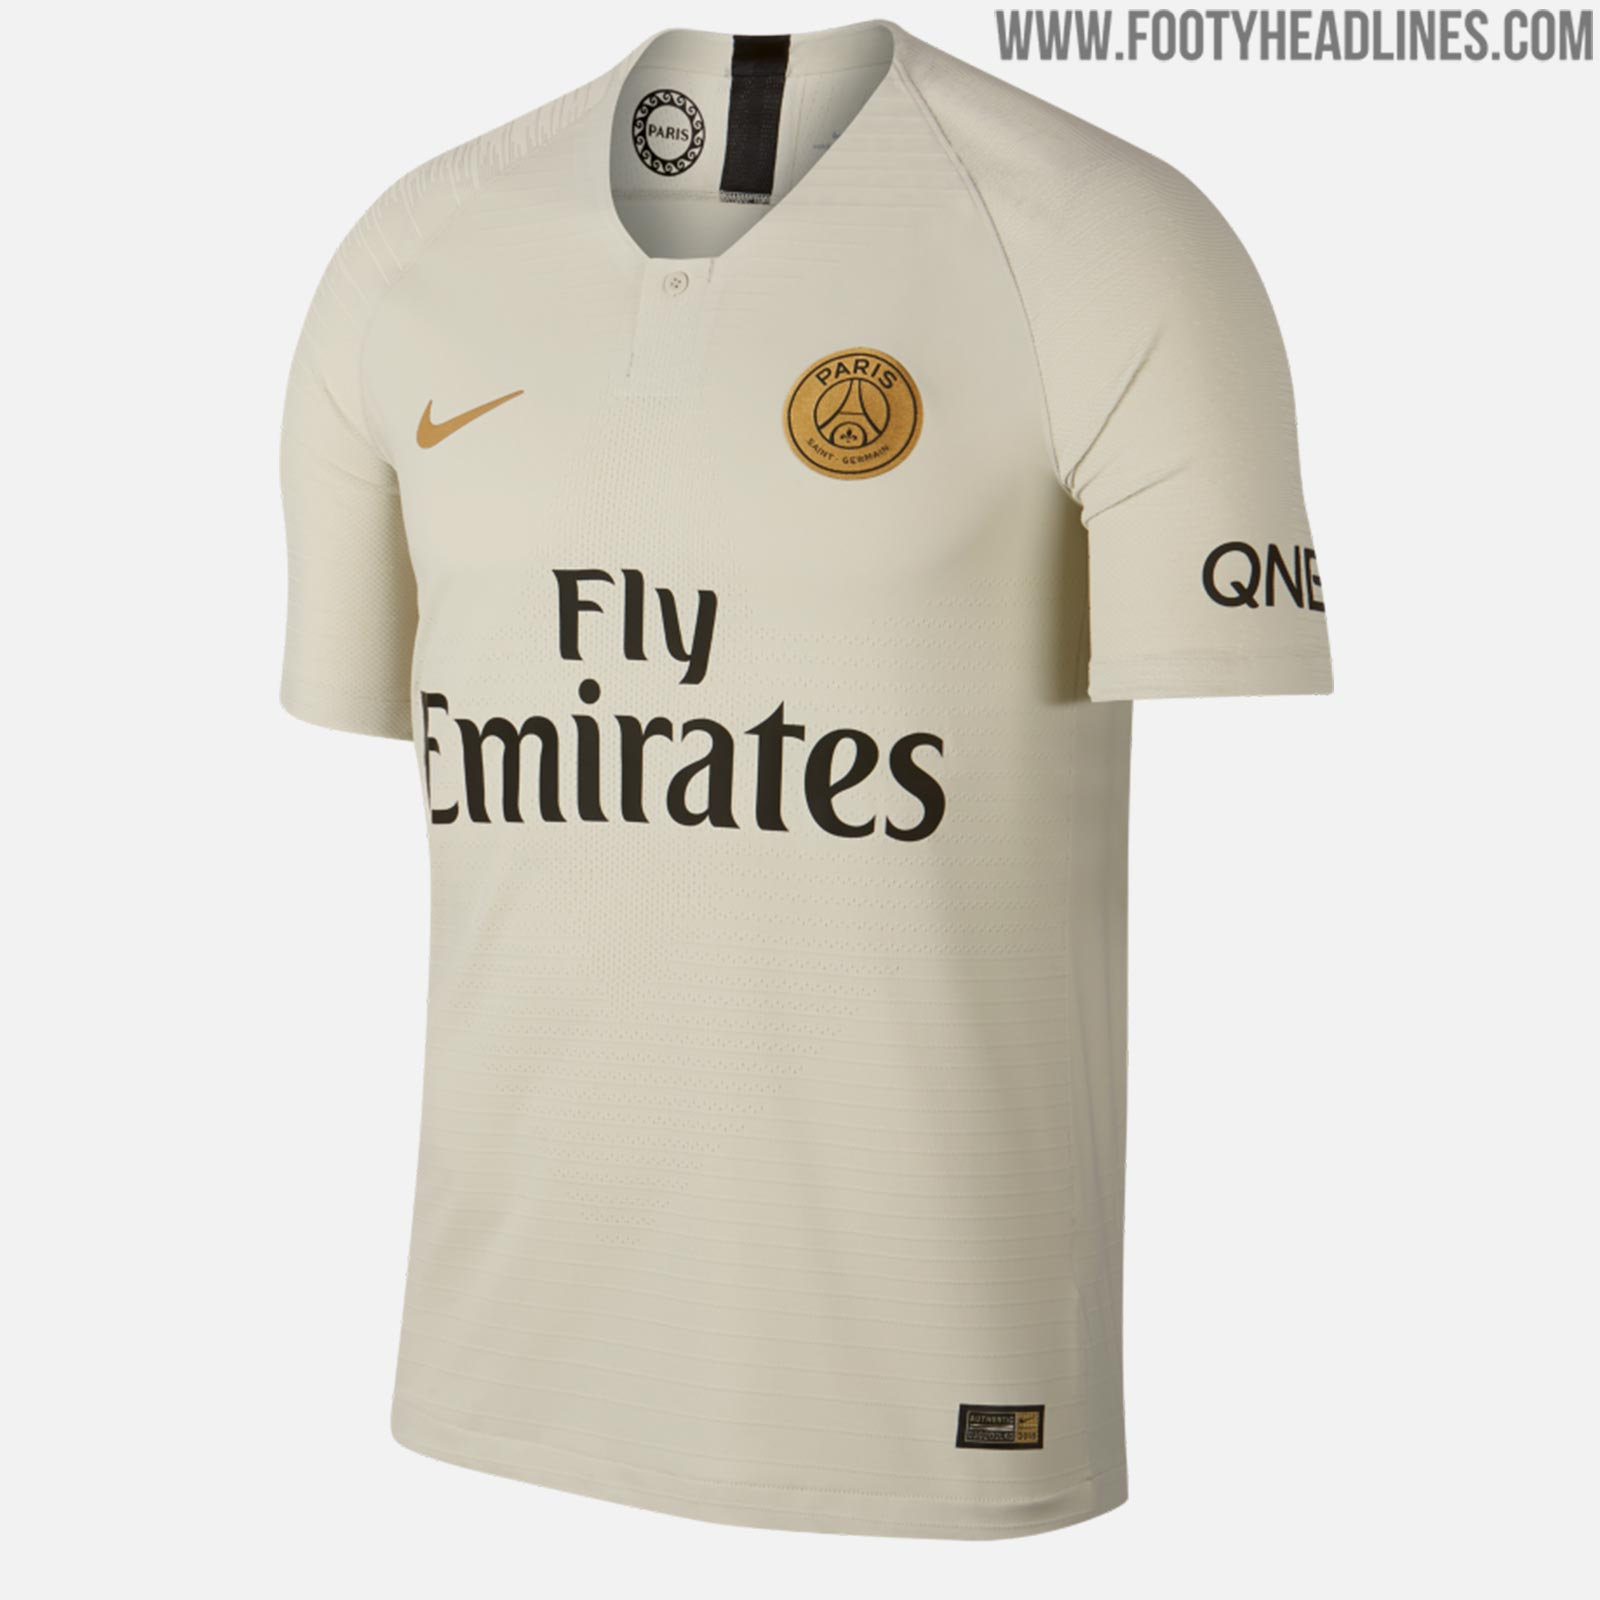 294cf2191b6 It is not known yet if Paris Saint-Germain will use the special font their  2018-2019 Ligue 1 games that they will play with the away kit.